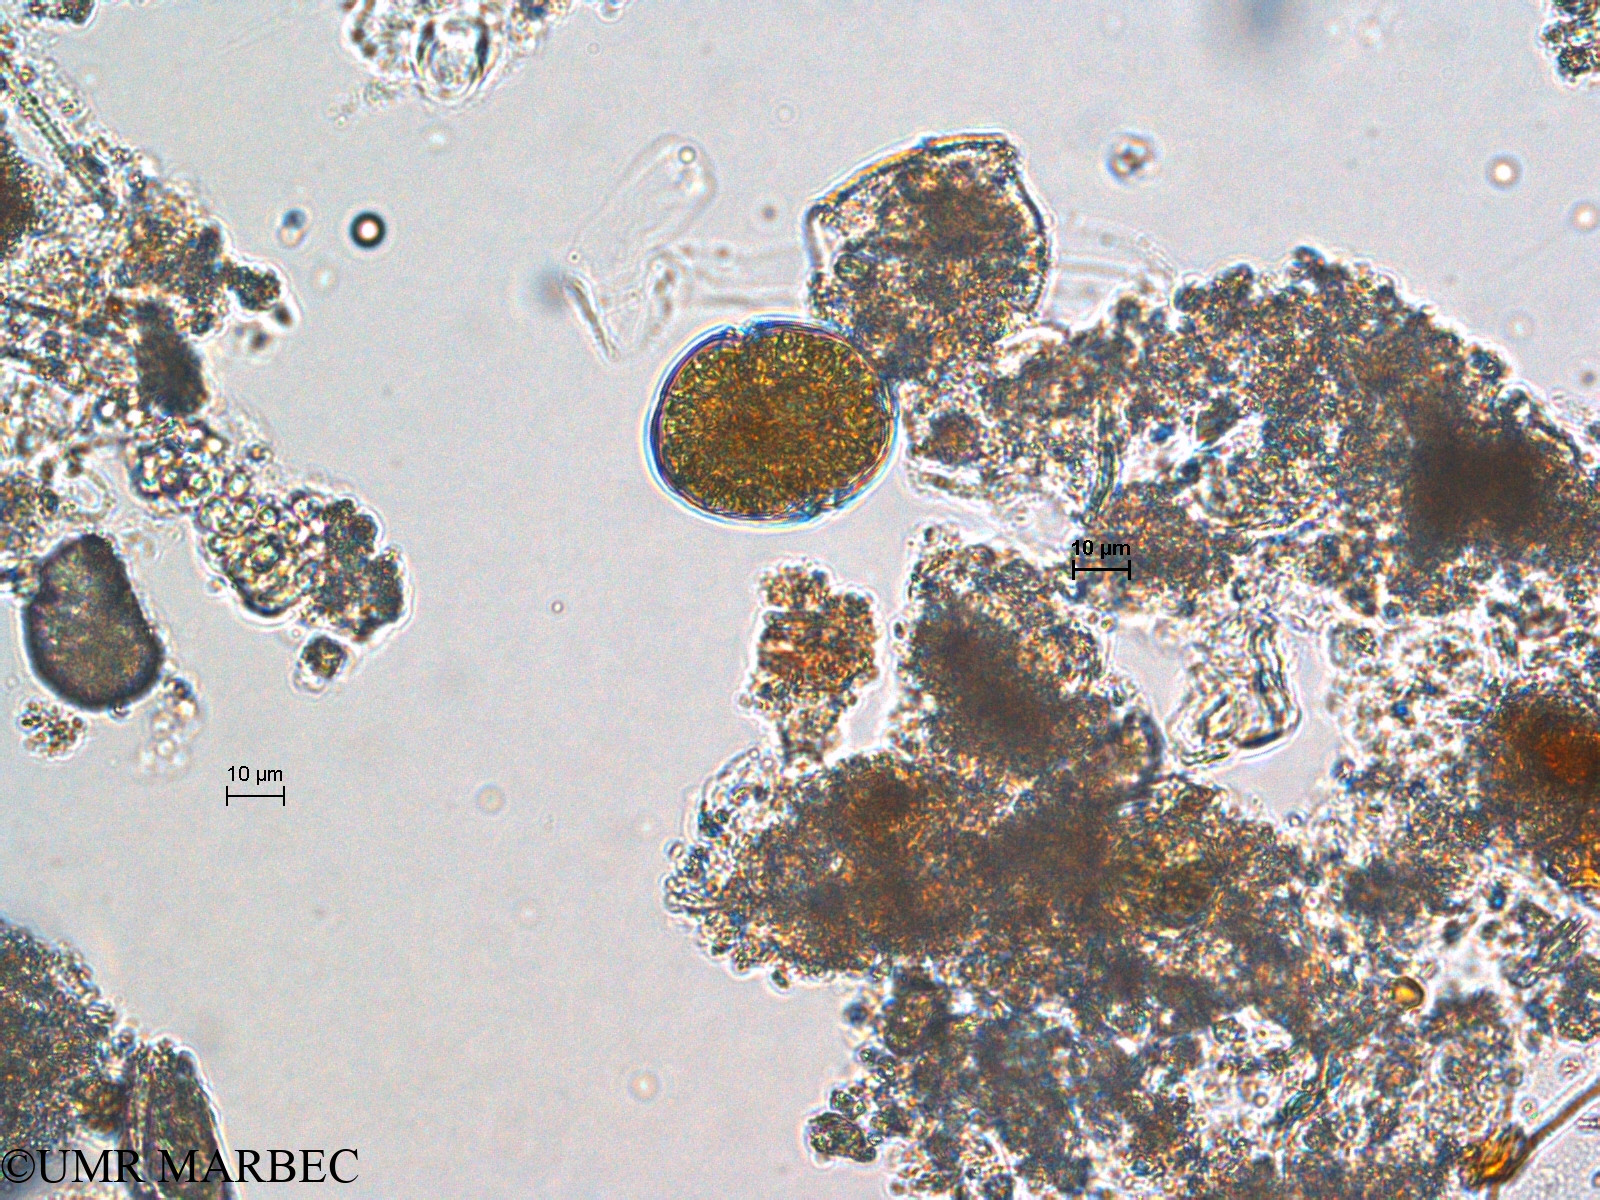 phyto/Scattered_Islands/europa/COMMA April 2011/Gymnodinium sp2 (ancien Dino s -3)(copy).jpg